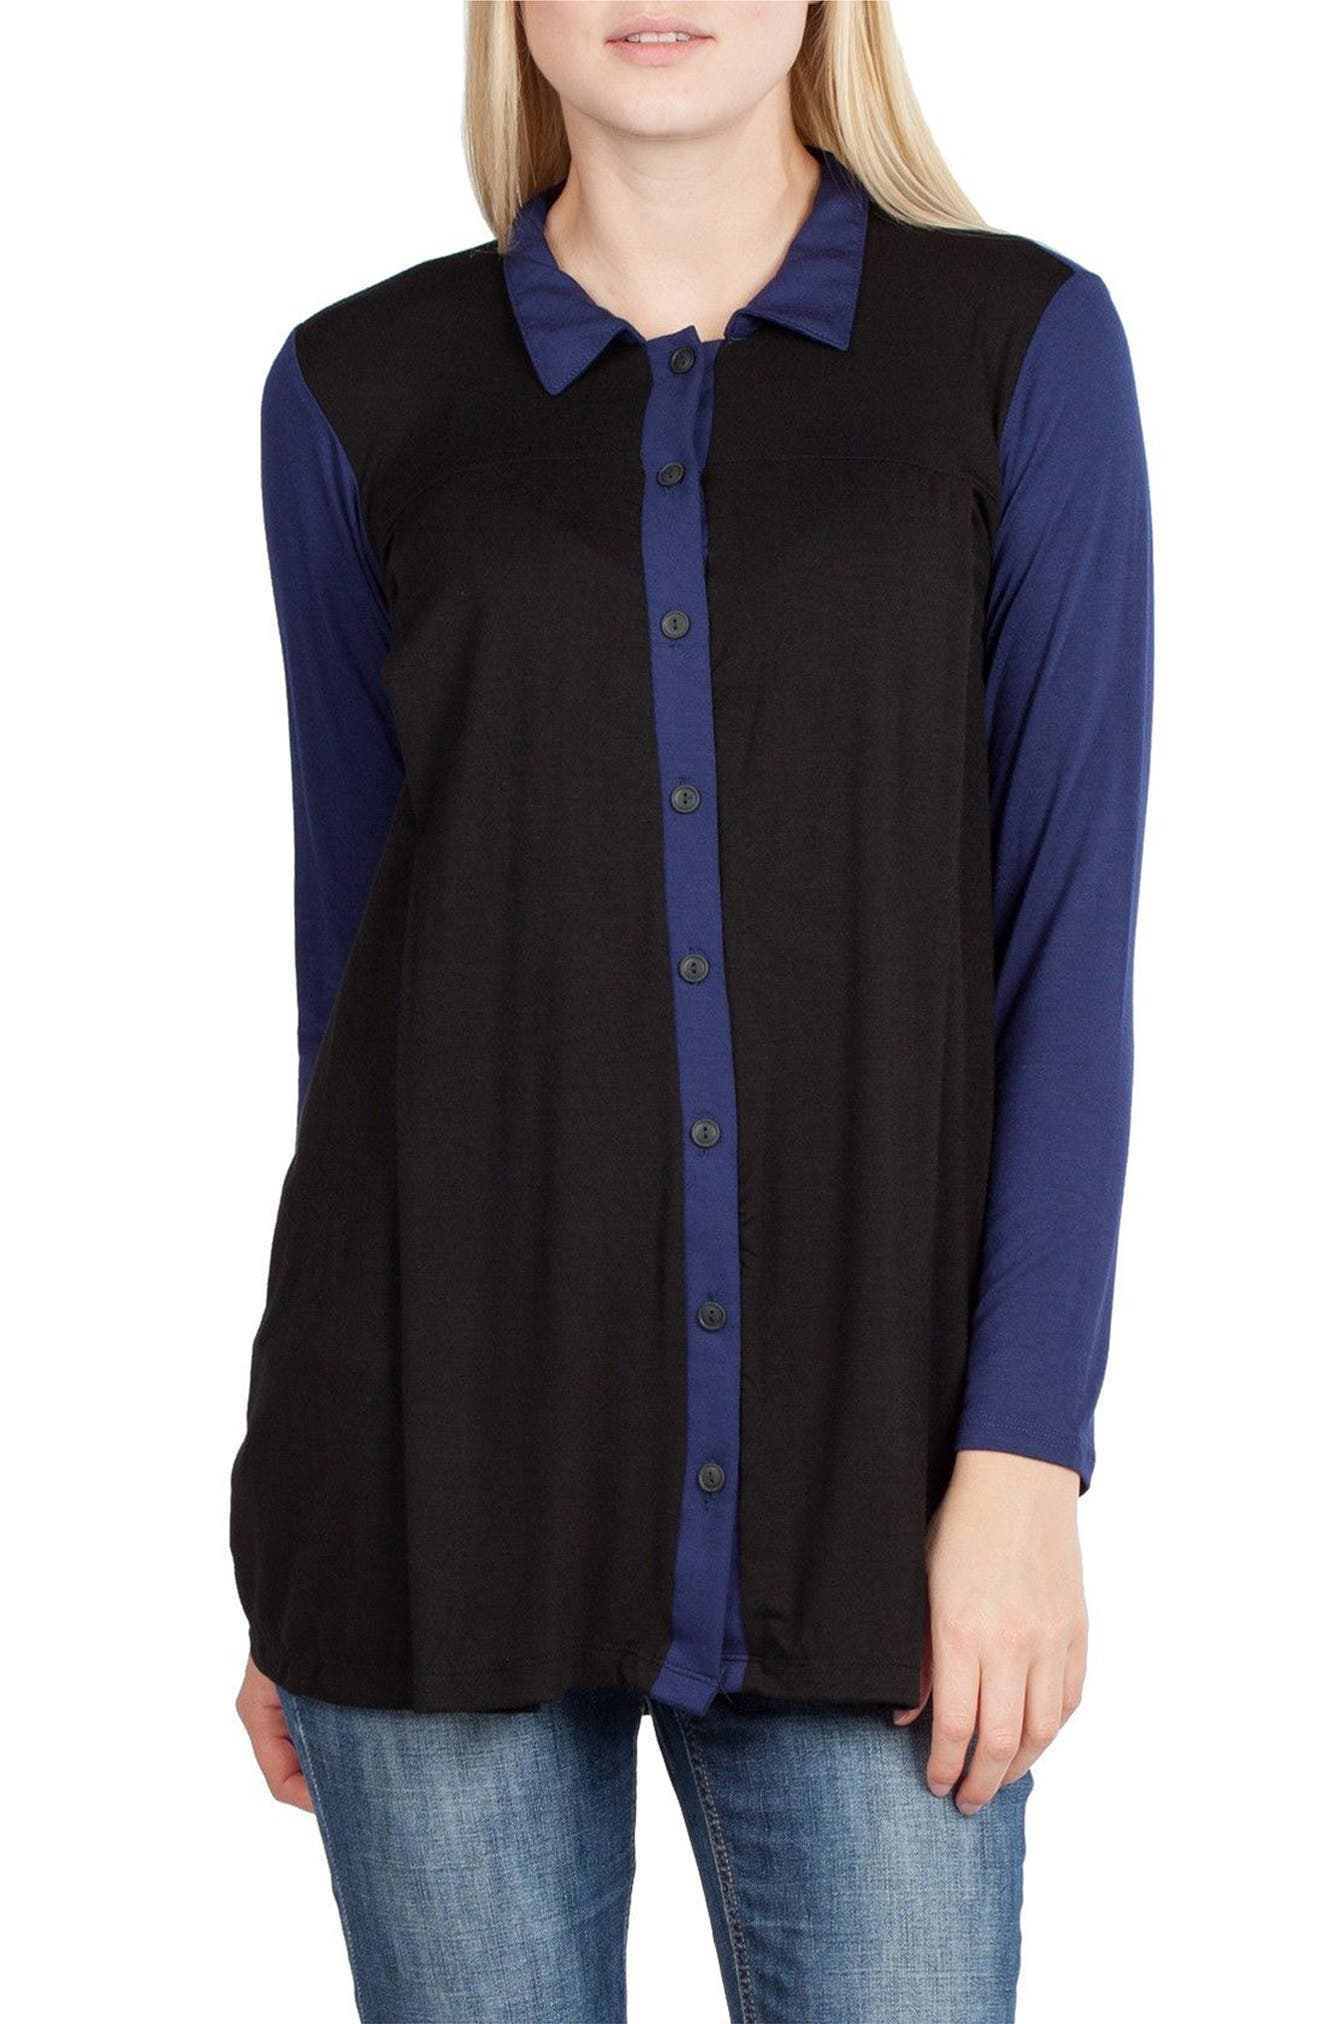 Berlin Maternity/Nursing Tunic Top,                             Alternate thumbnail 3, color,                             Black/ Navy Contrast